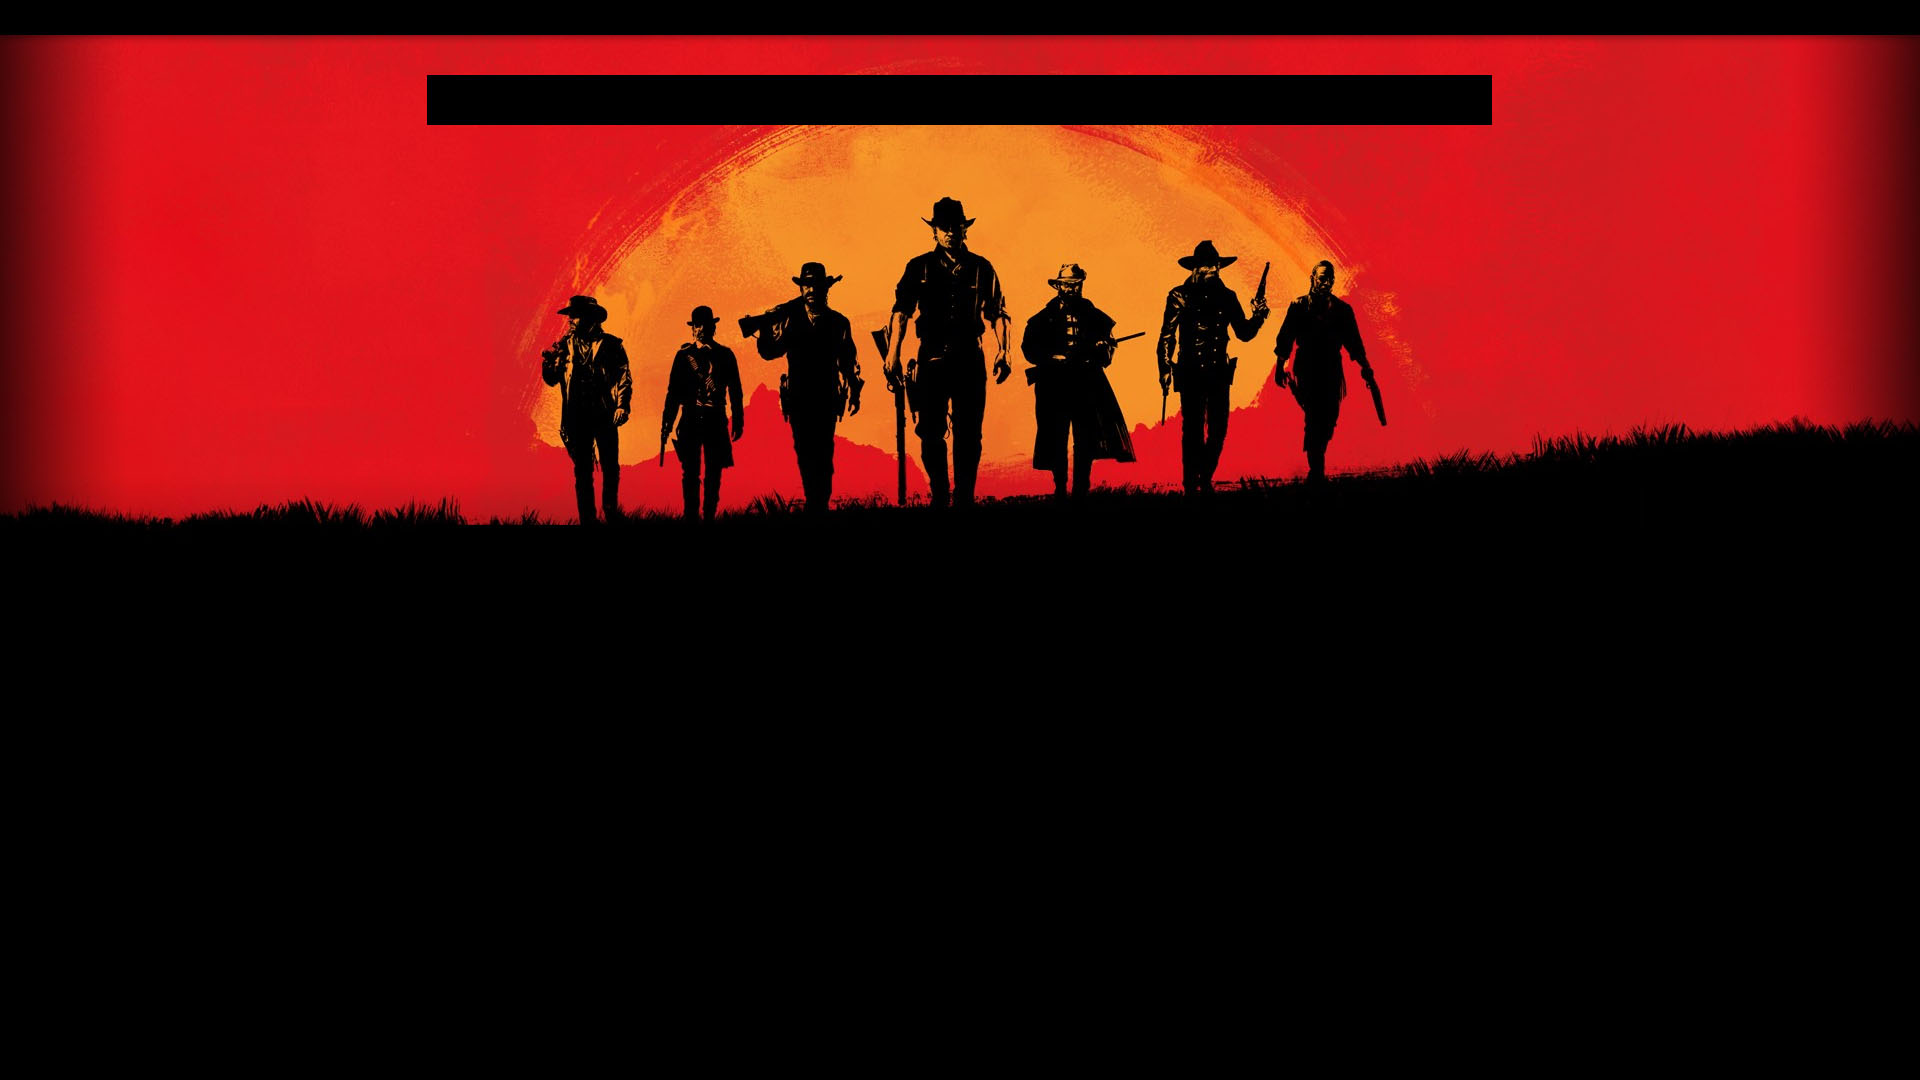 Red Dead Redemption 2 [PS4/Xbox One] video game